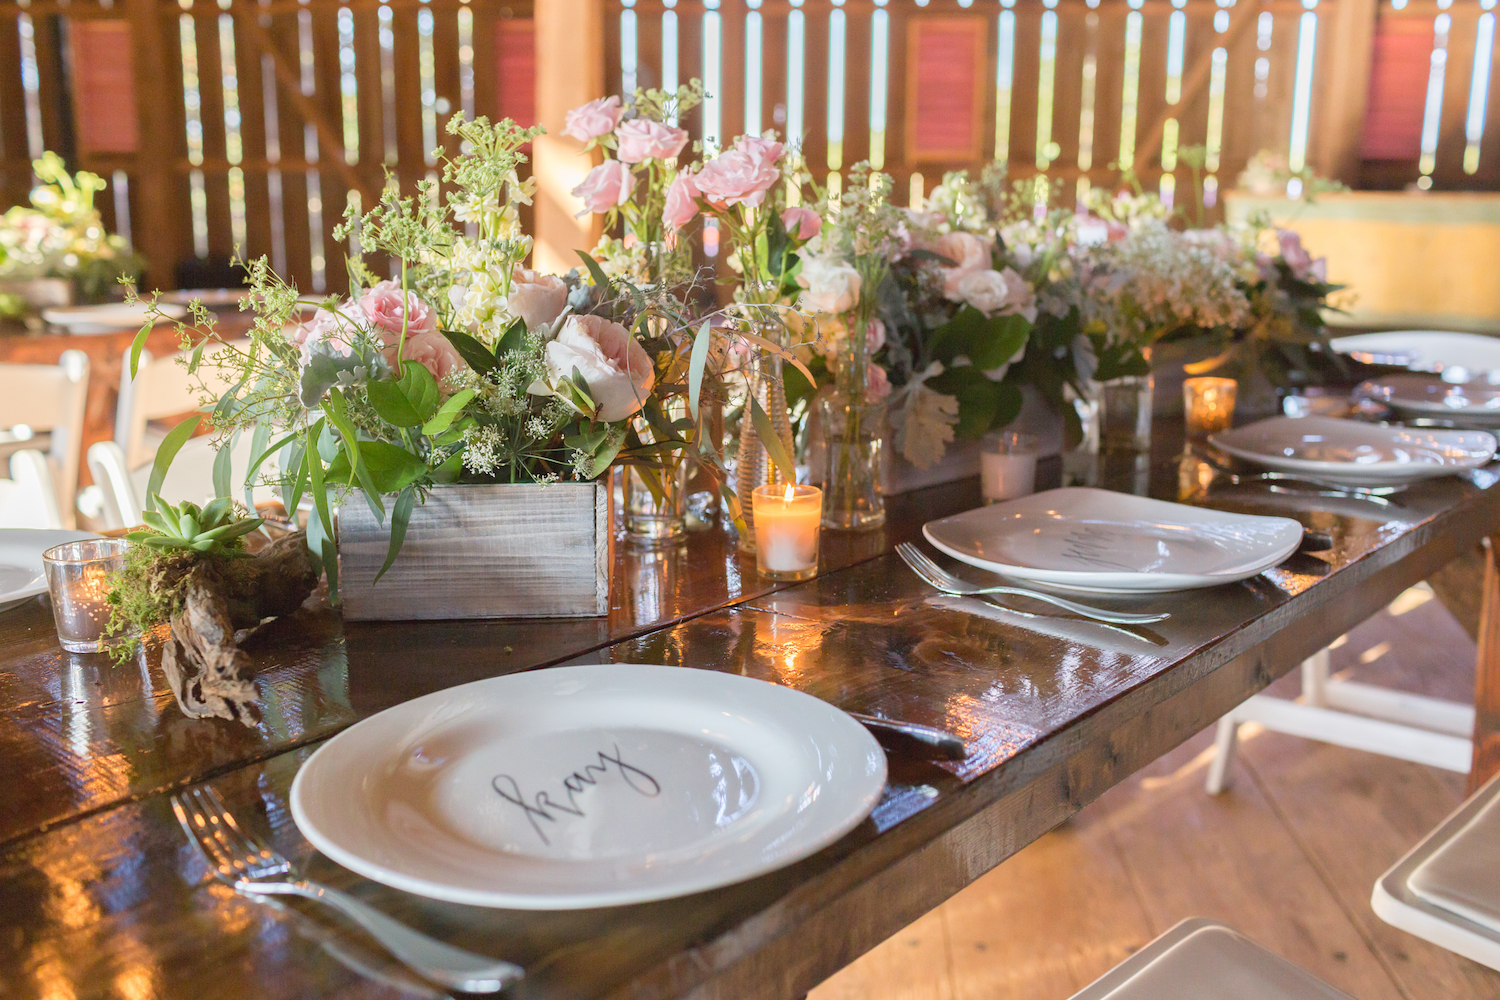 We will go over everything again, the number of guests, the number of tables, and the way each tablescape should look. Photography by Nicole Haun.